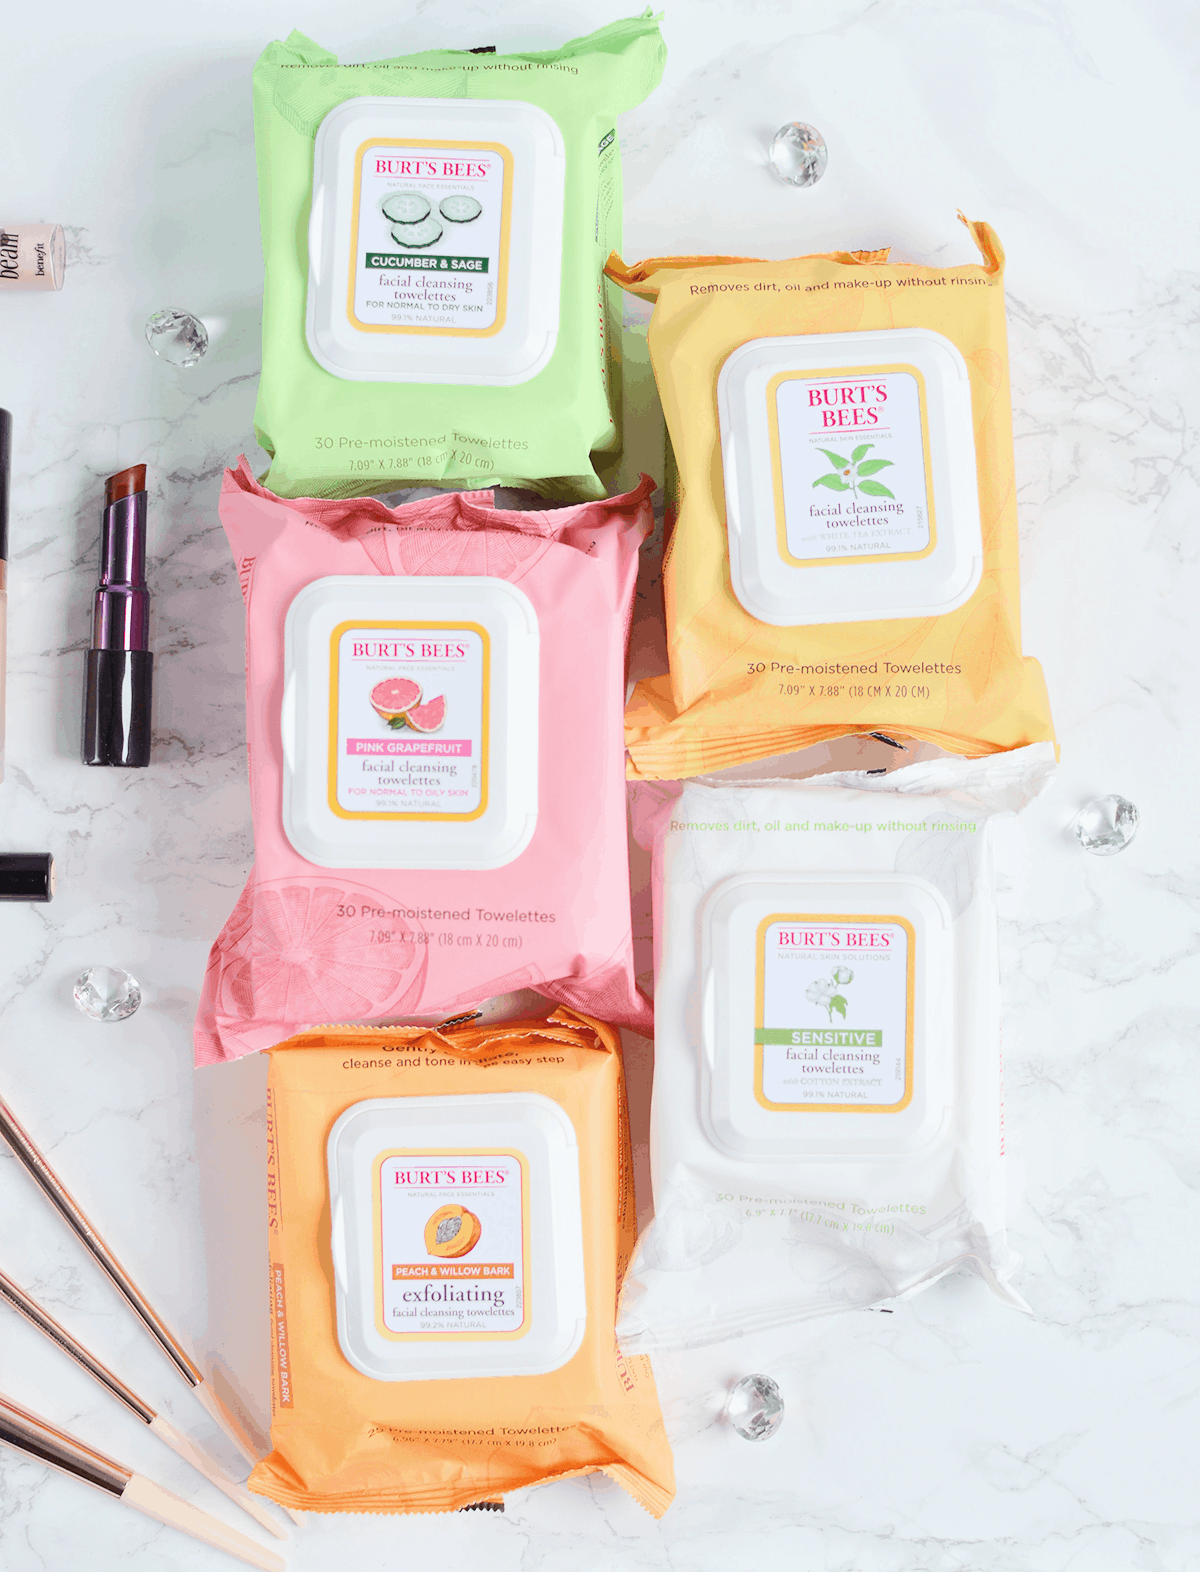 Burt's Bees has amazing facial wipes for all skin types! #NaturesSolutions AD | oliveandivyblog.com